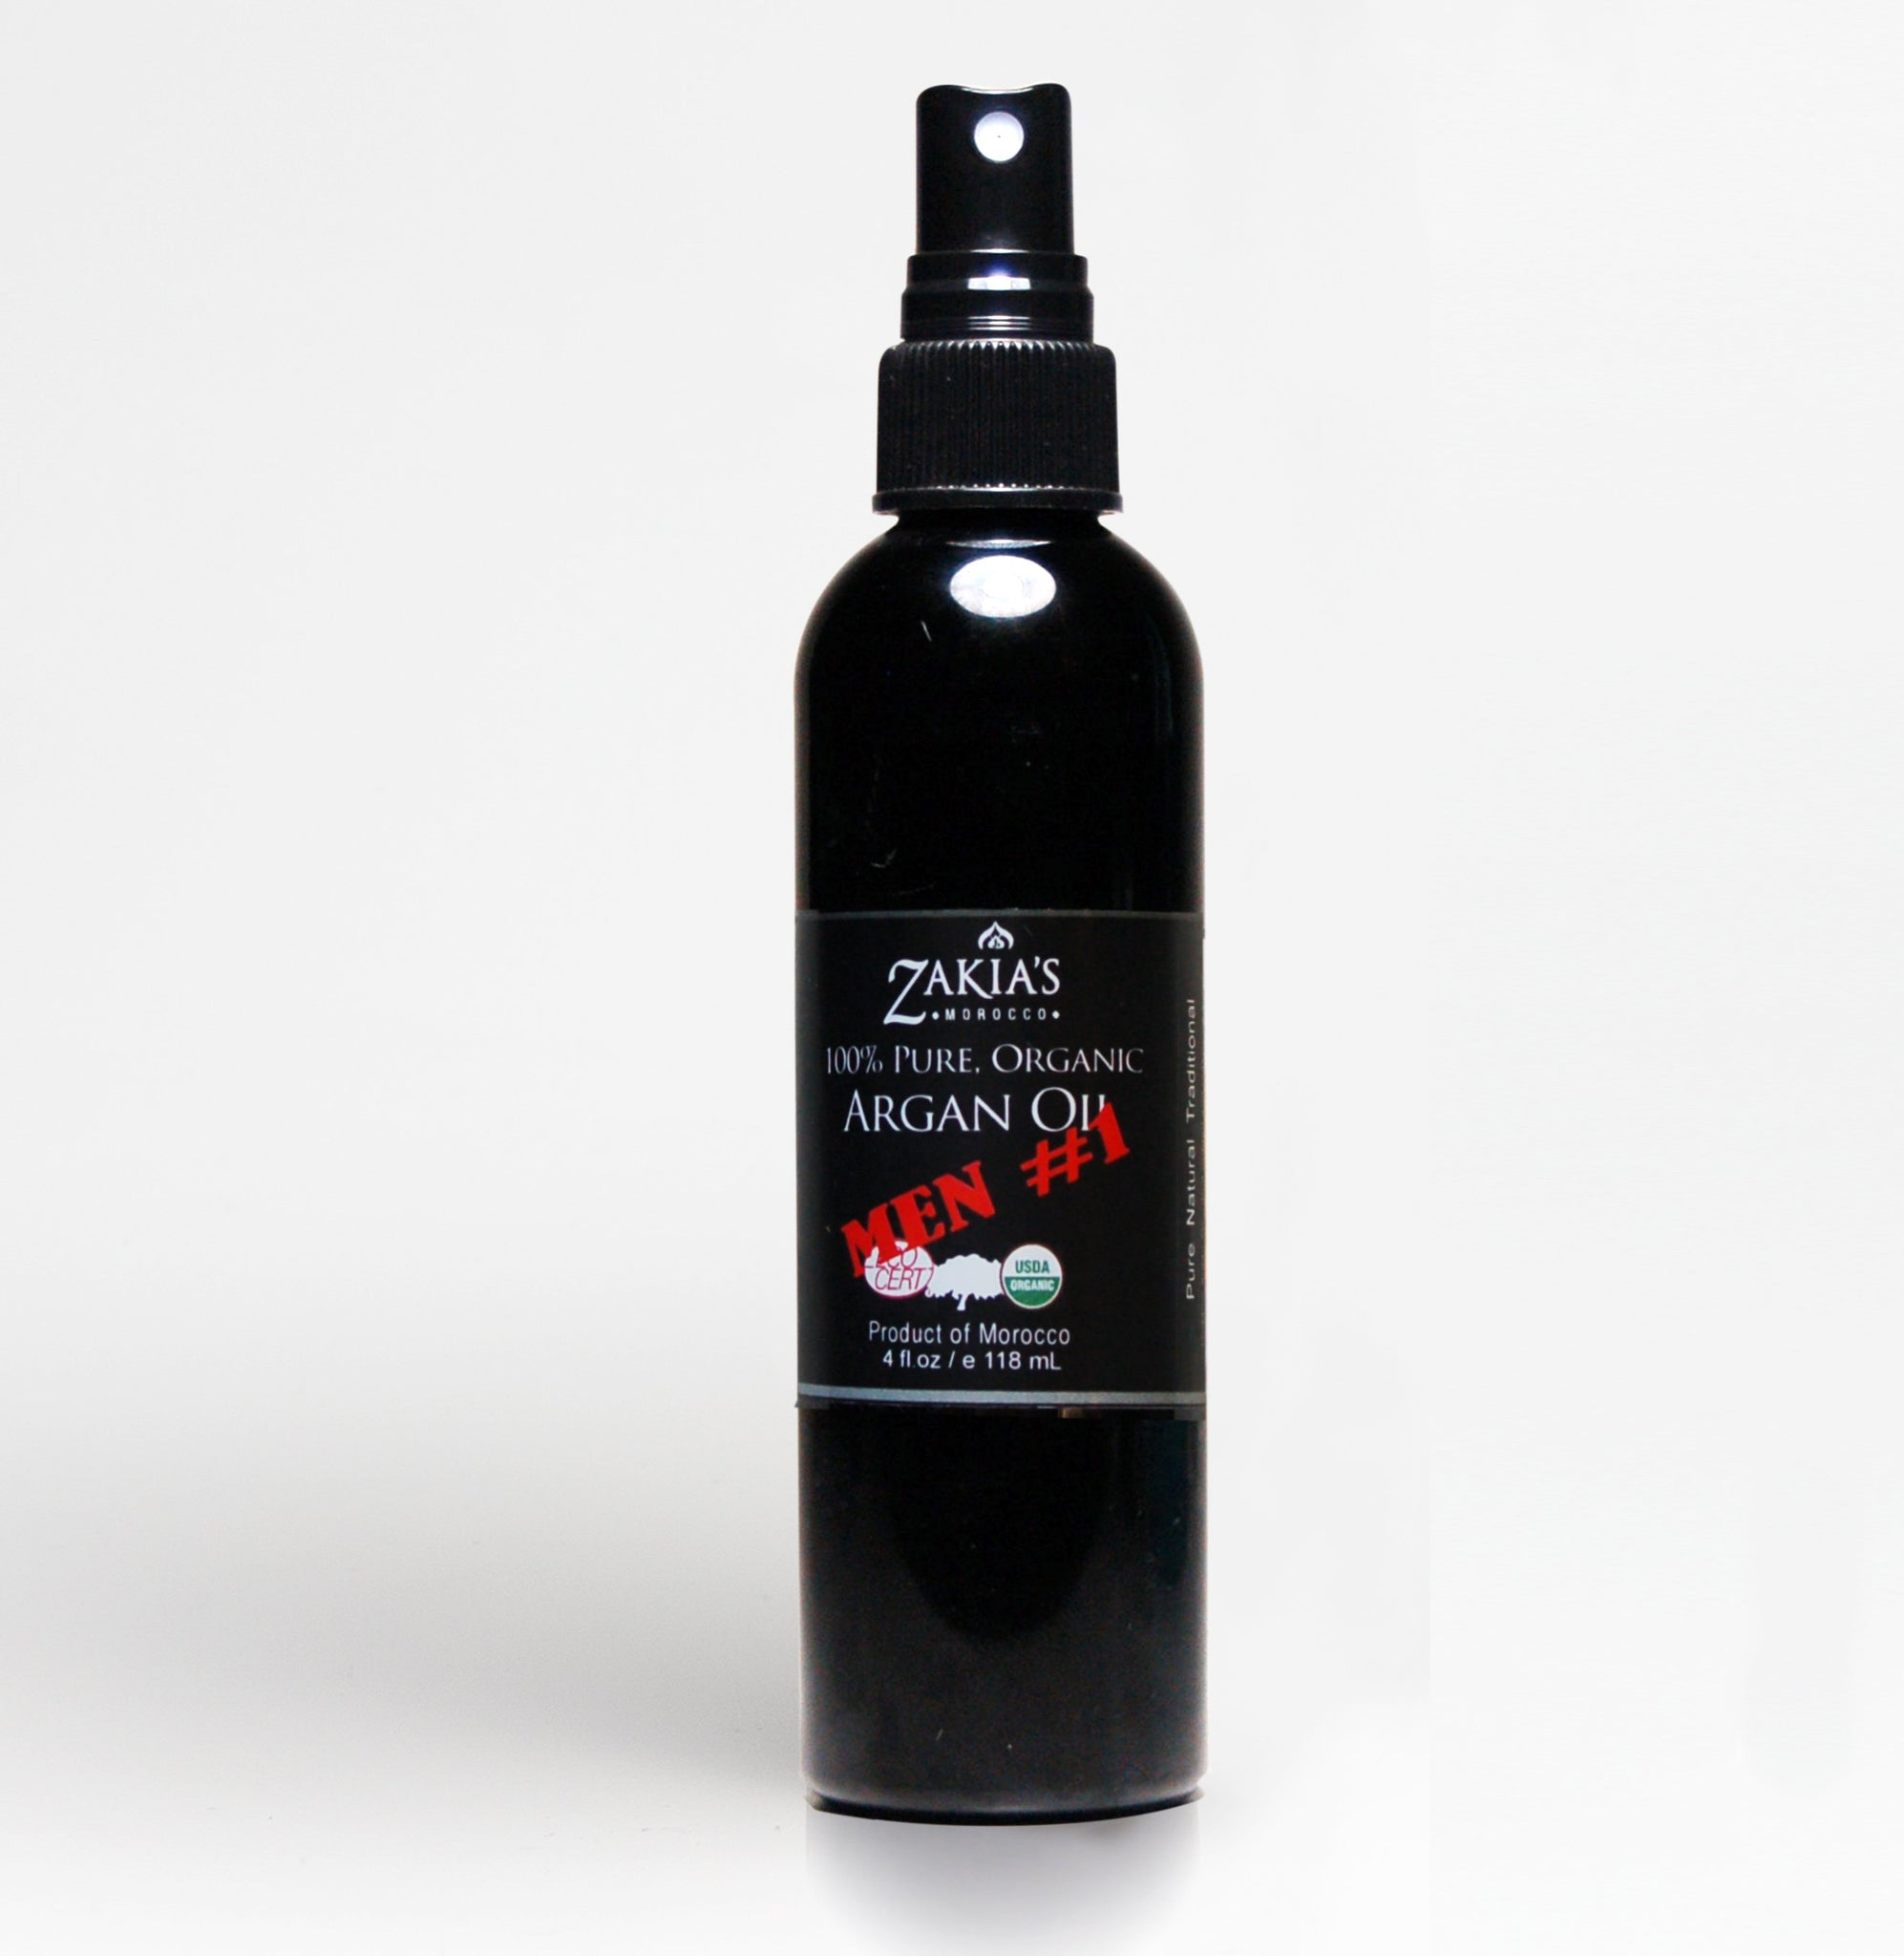 Zakia's Organic Argan Oil - Men's #1